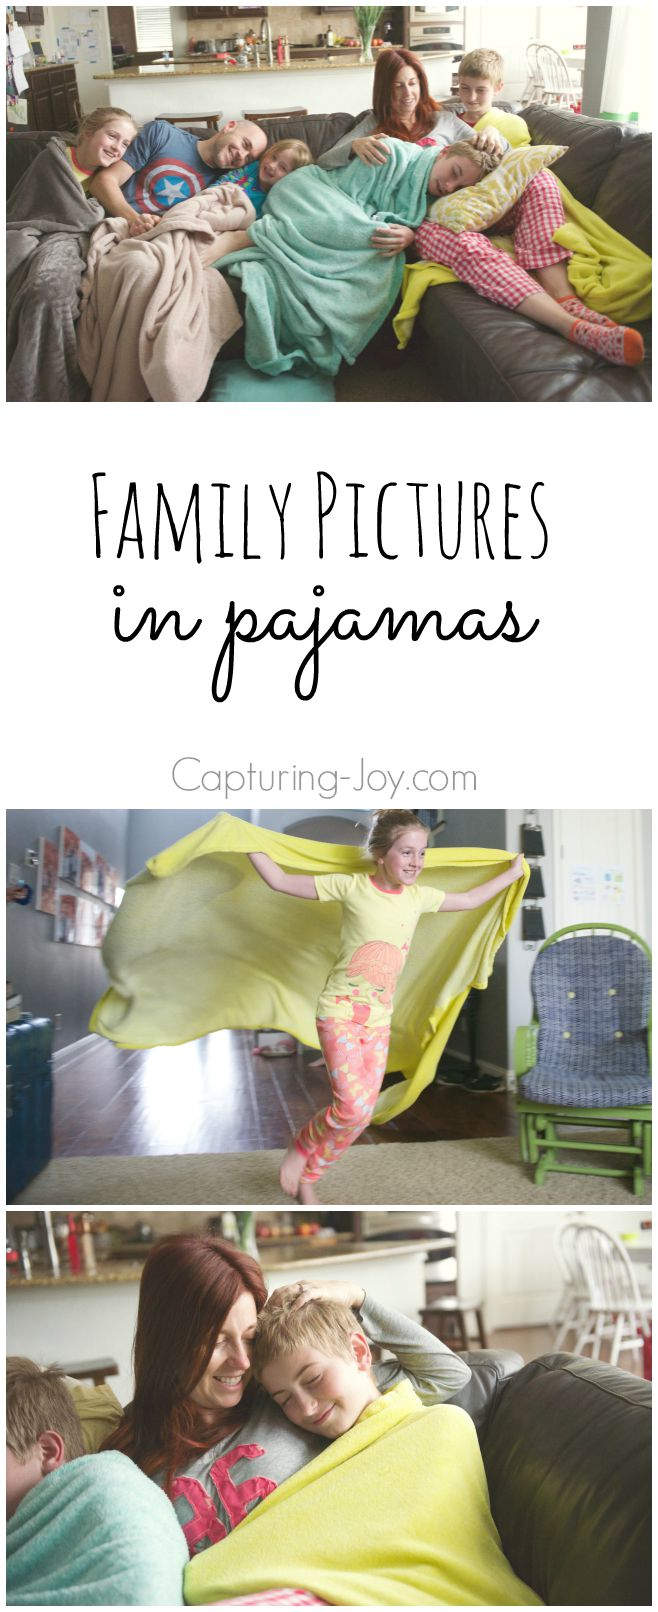 Family Pictures in Pajamas at home